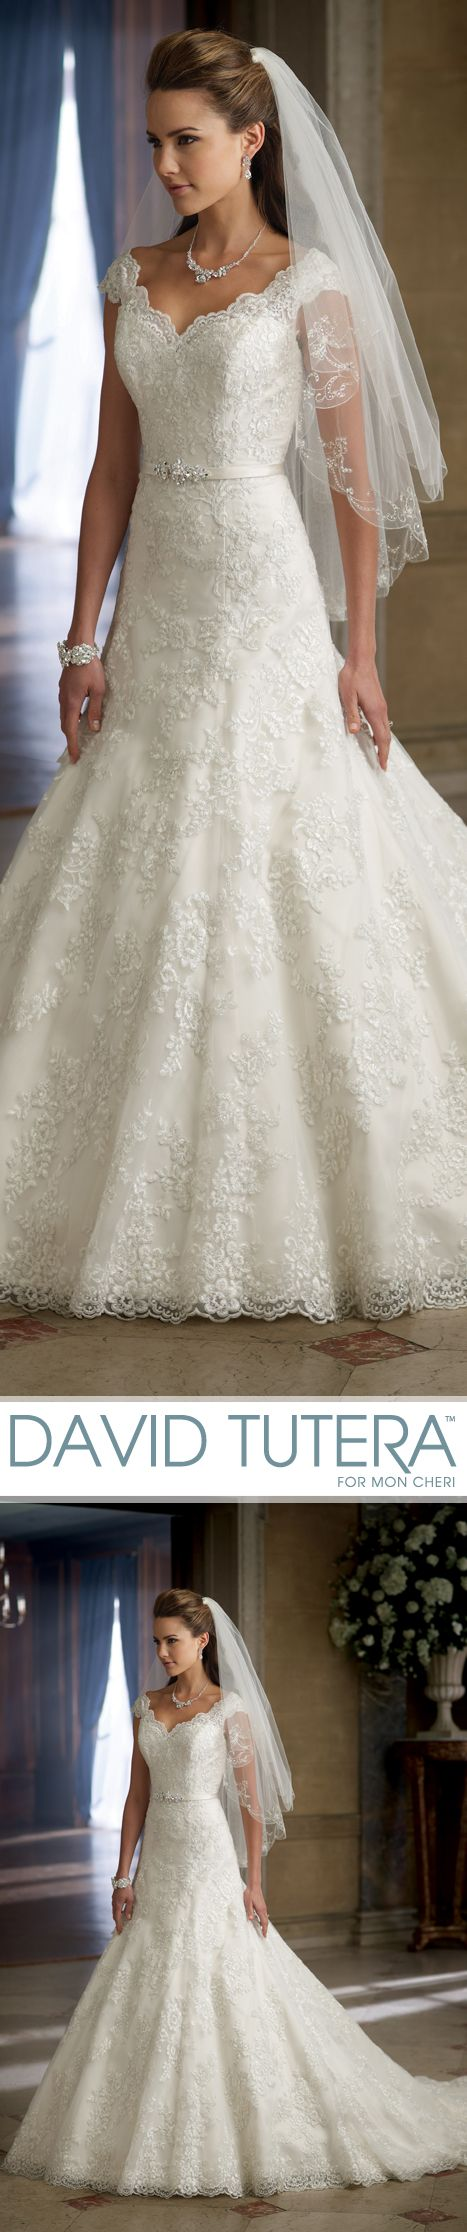 Marta Wedding Dresses 2013 Collection